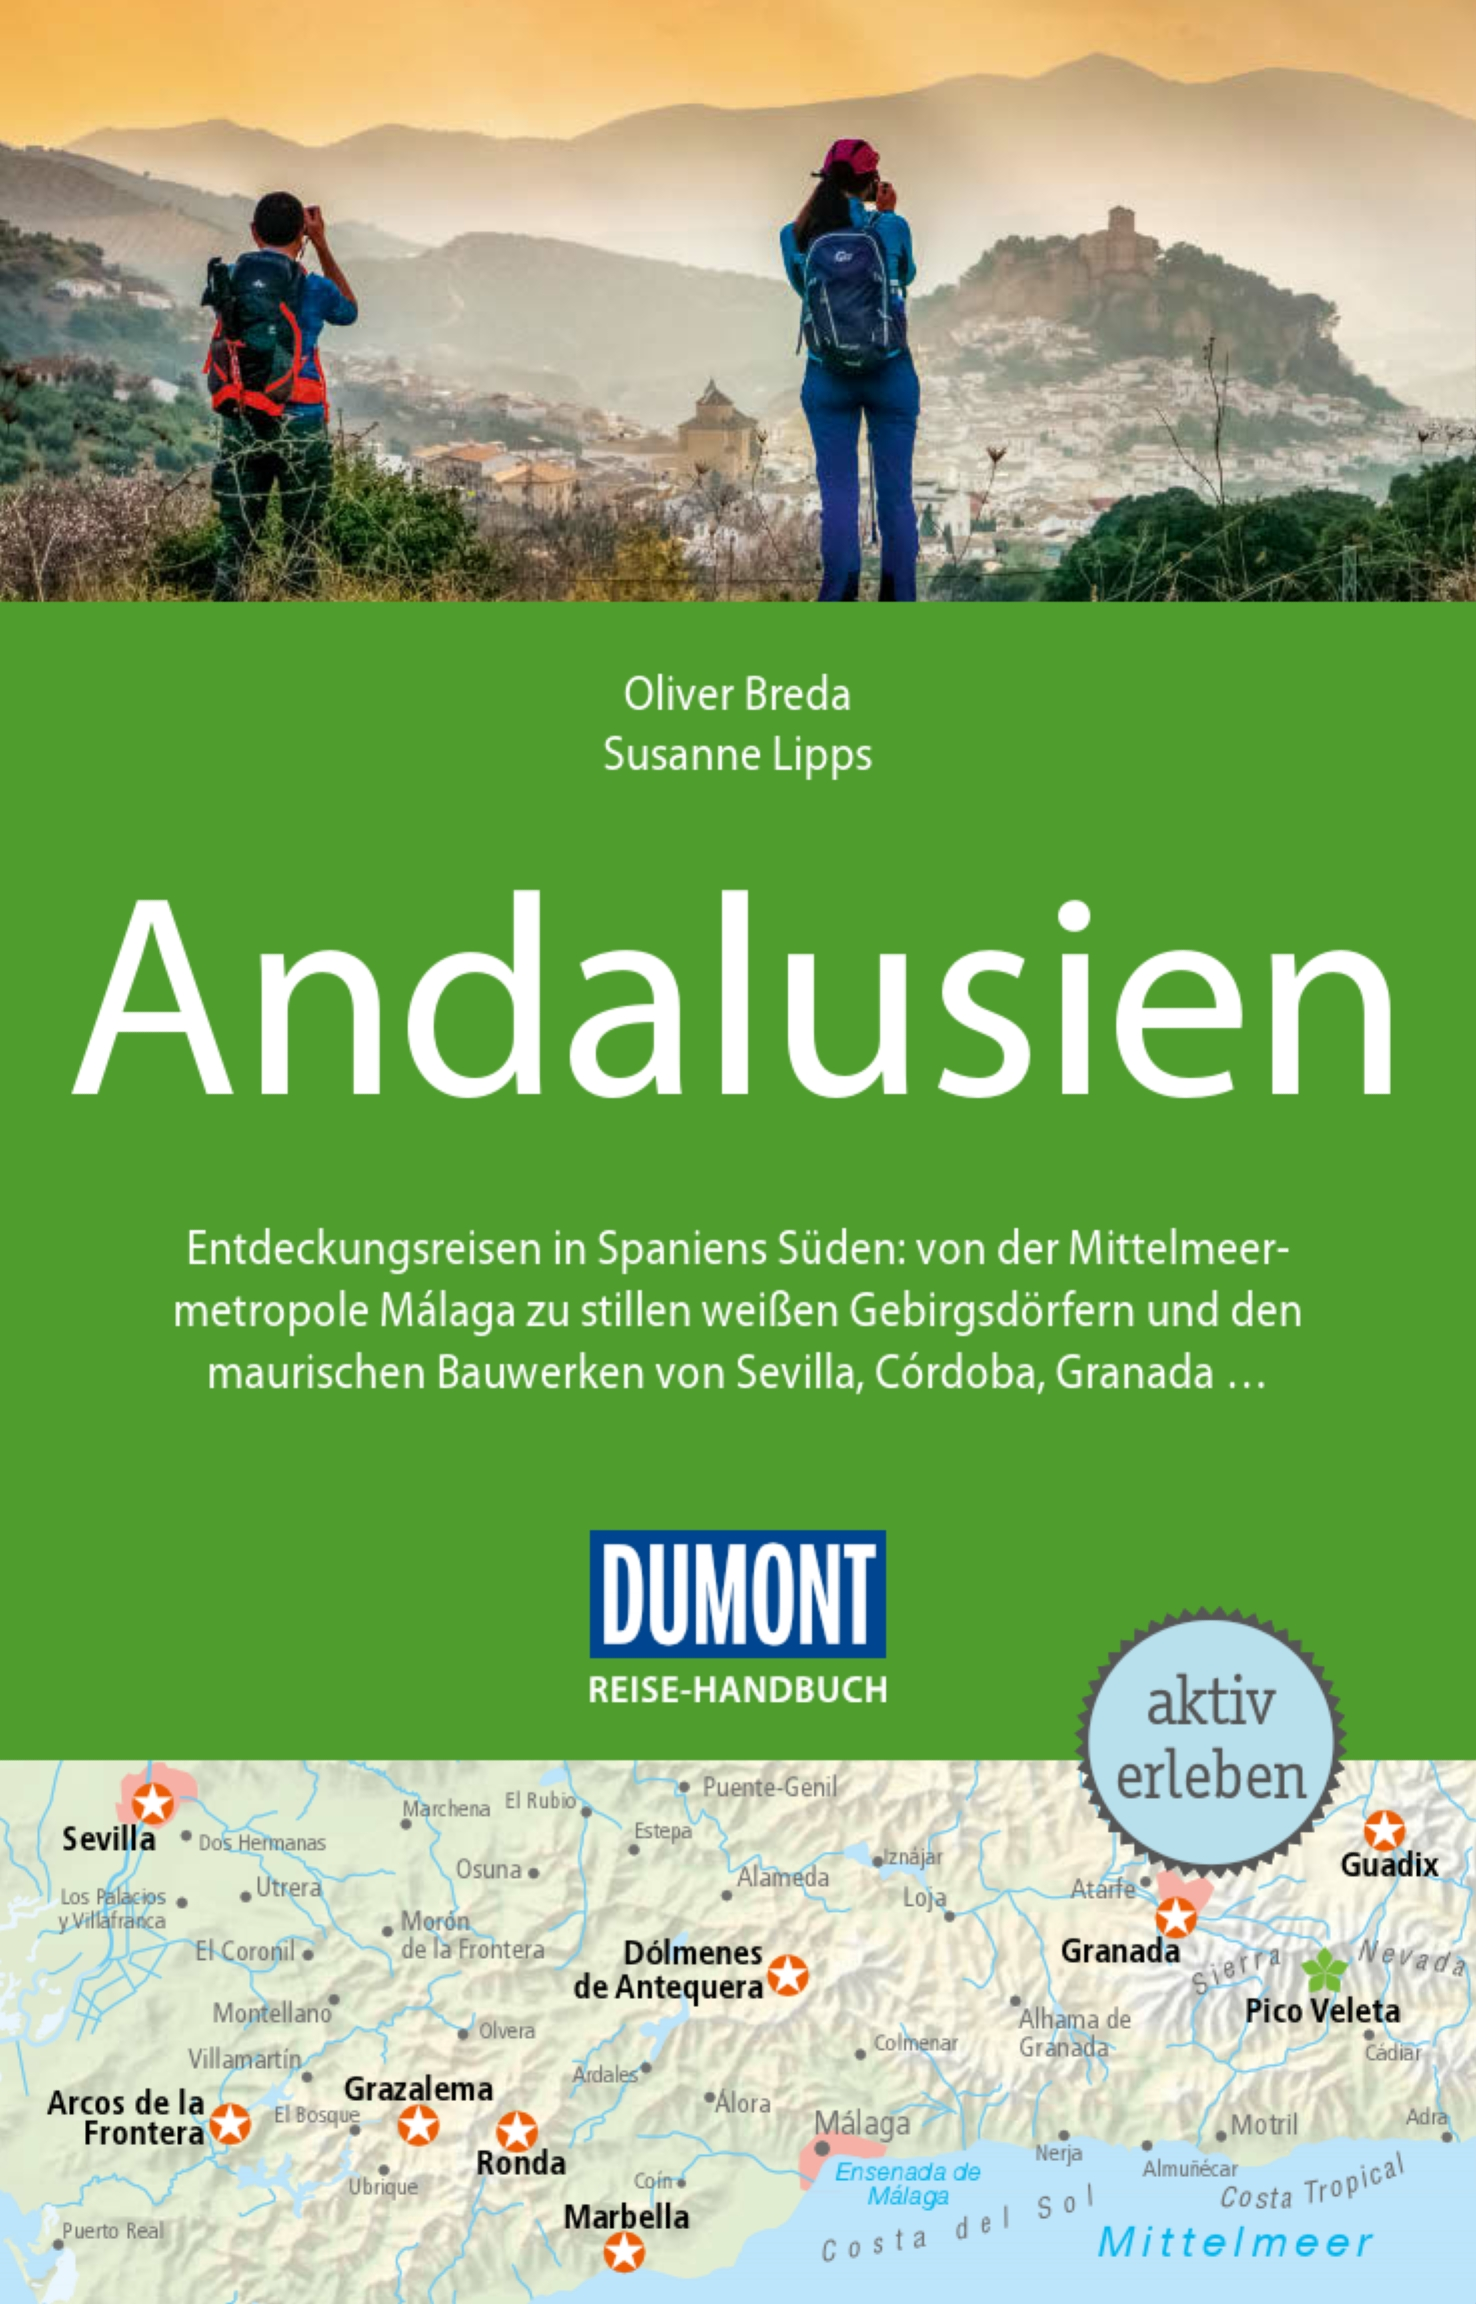 DuMont Reise-Handbuch - Andalusien (Cover)